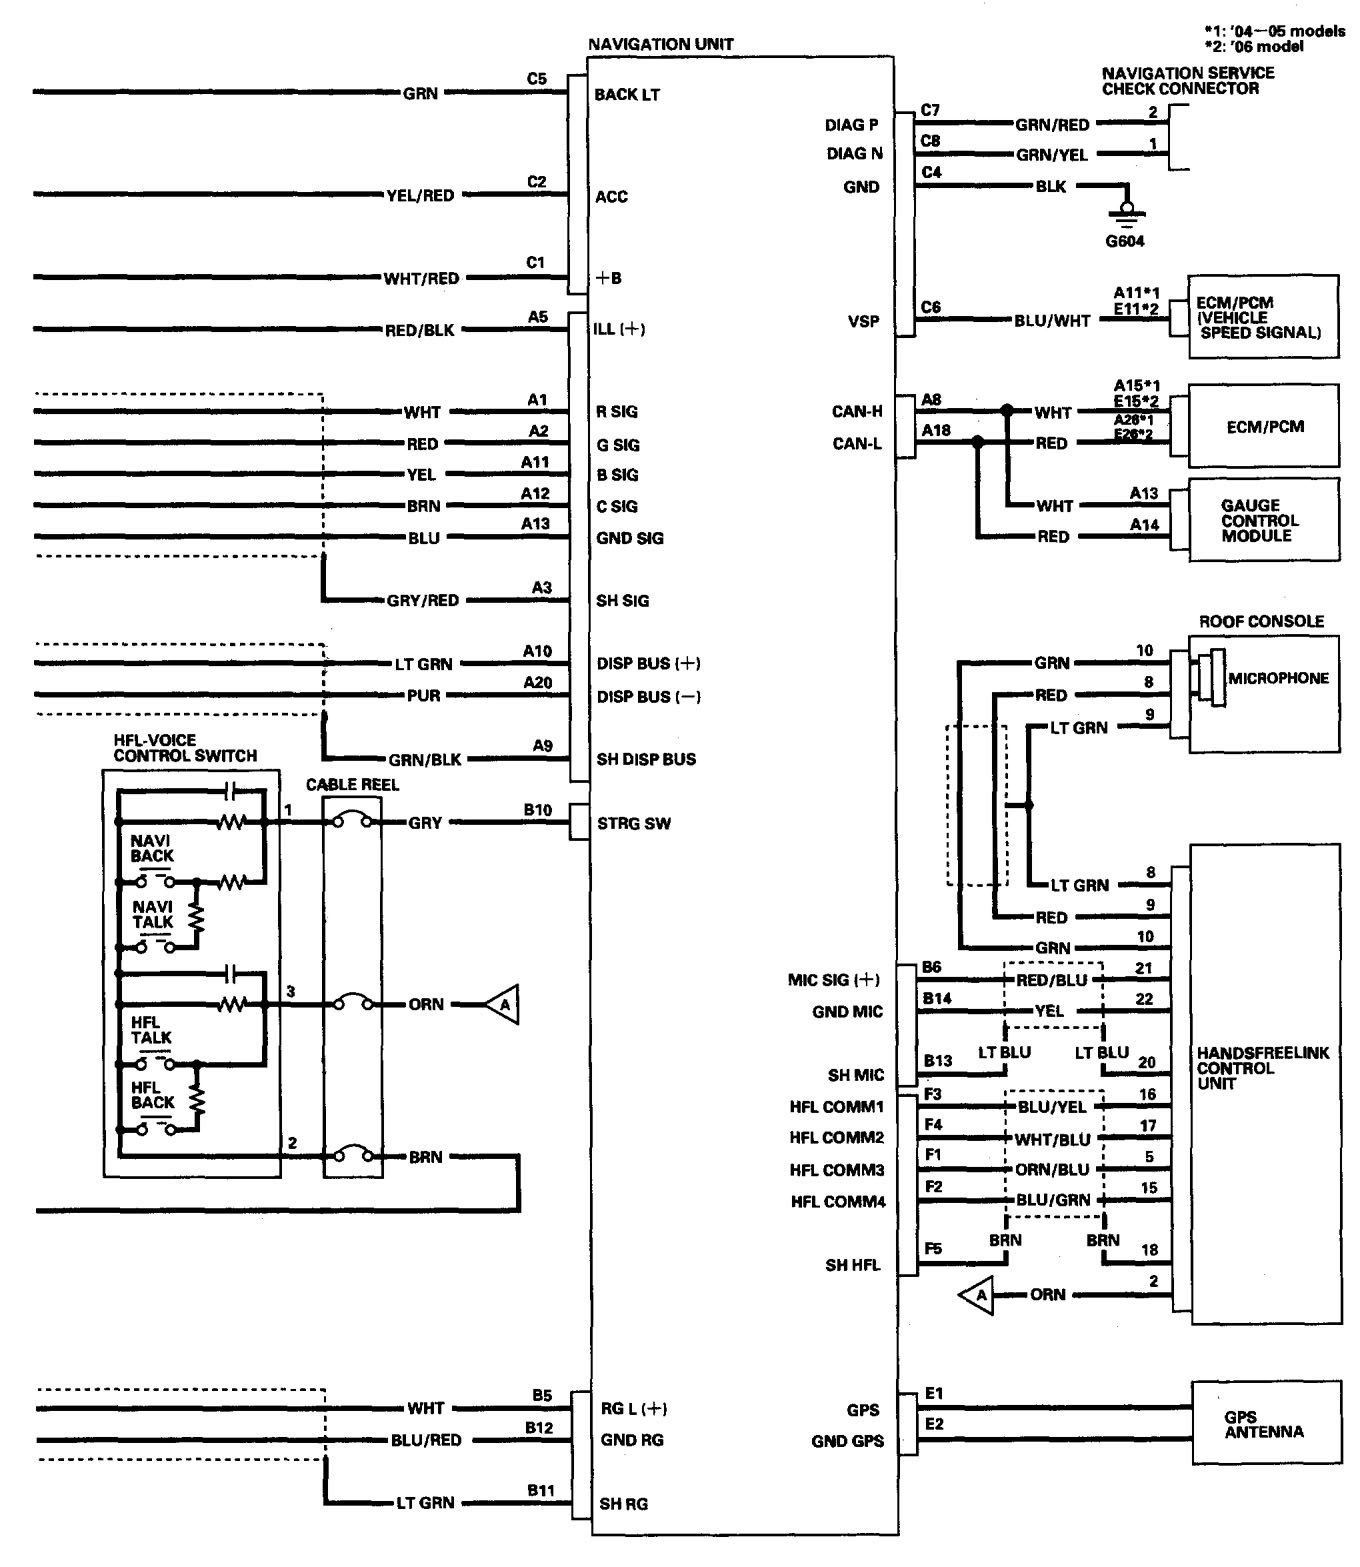 2008 acura tl wiring wiring diagram library 2008 Acura TL Paint Codes 2008 acura tl wiring arm disarm wiring diagram read 2008 acura tl wiring